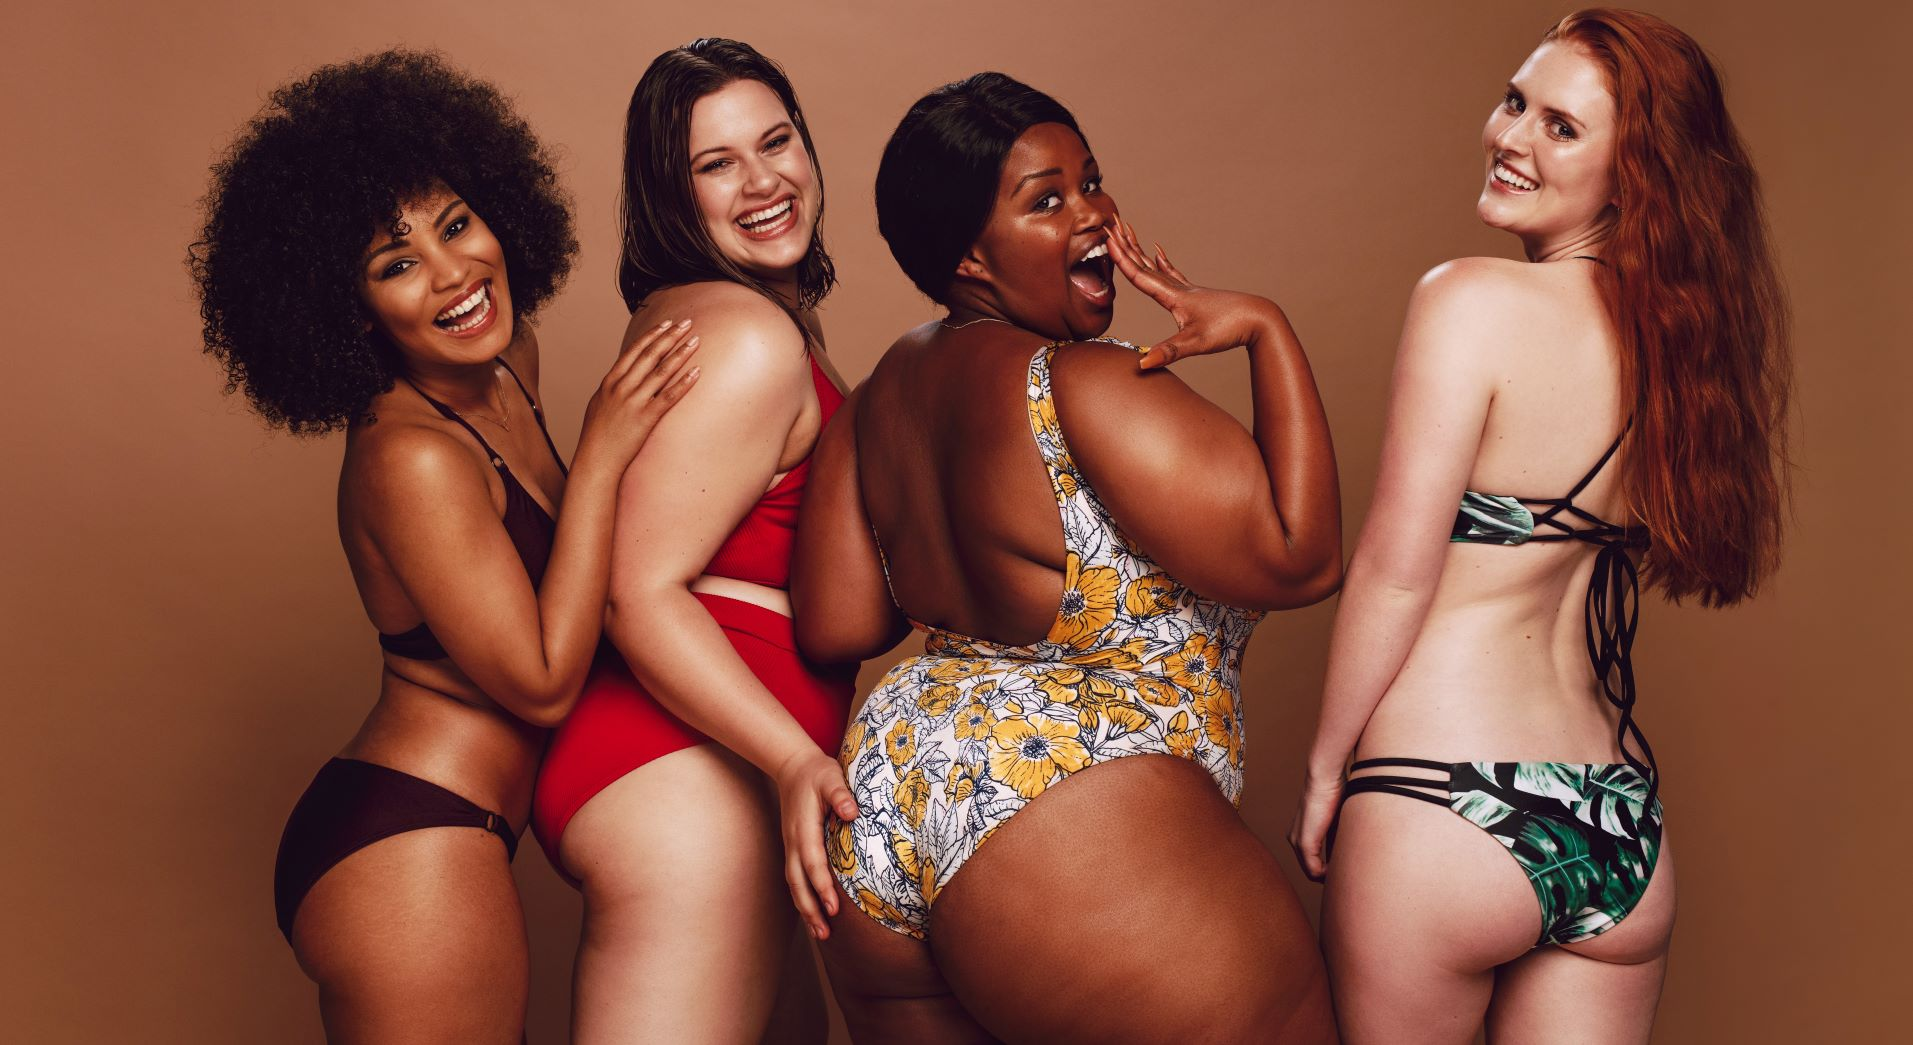 Amazon Has the Cutest Swimwear on Sale for Prime Day So You Can Stock Up for Summer